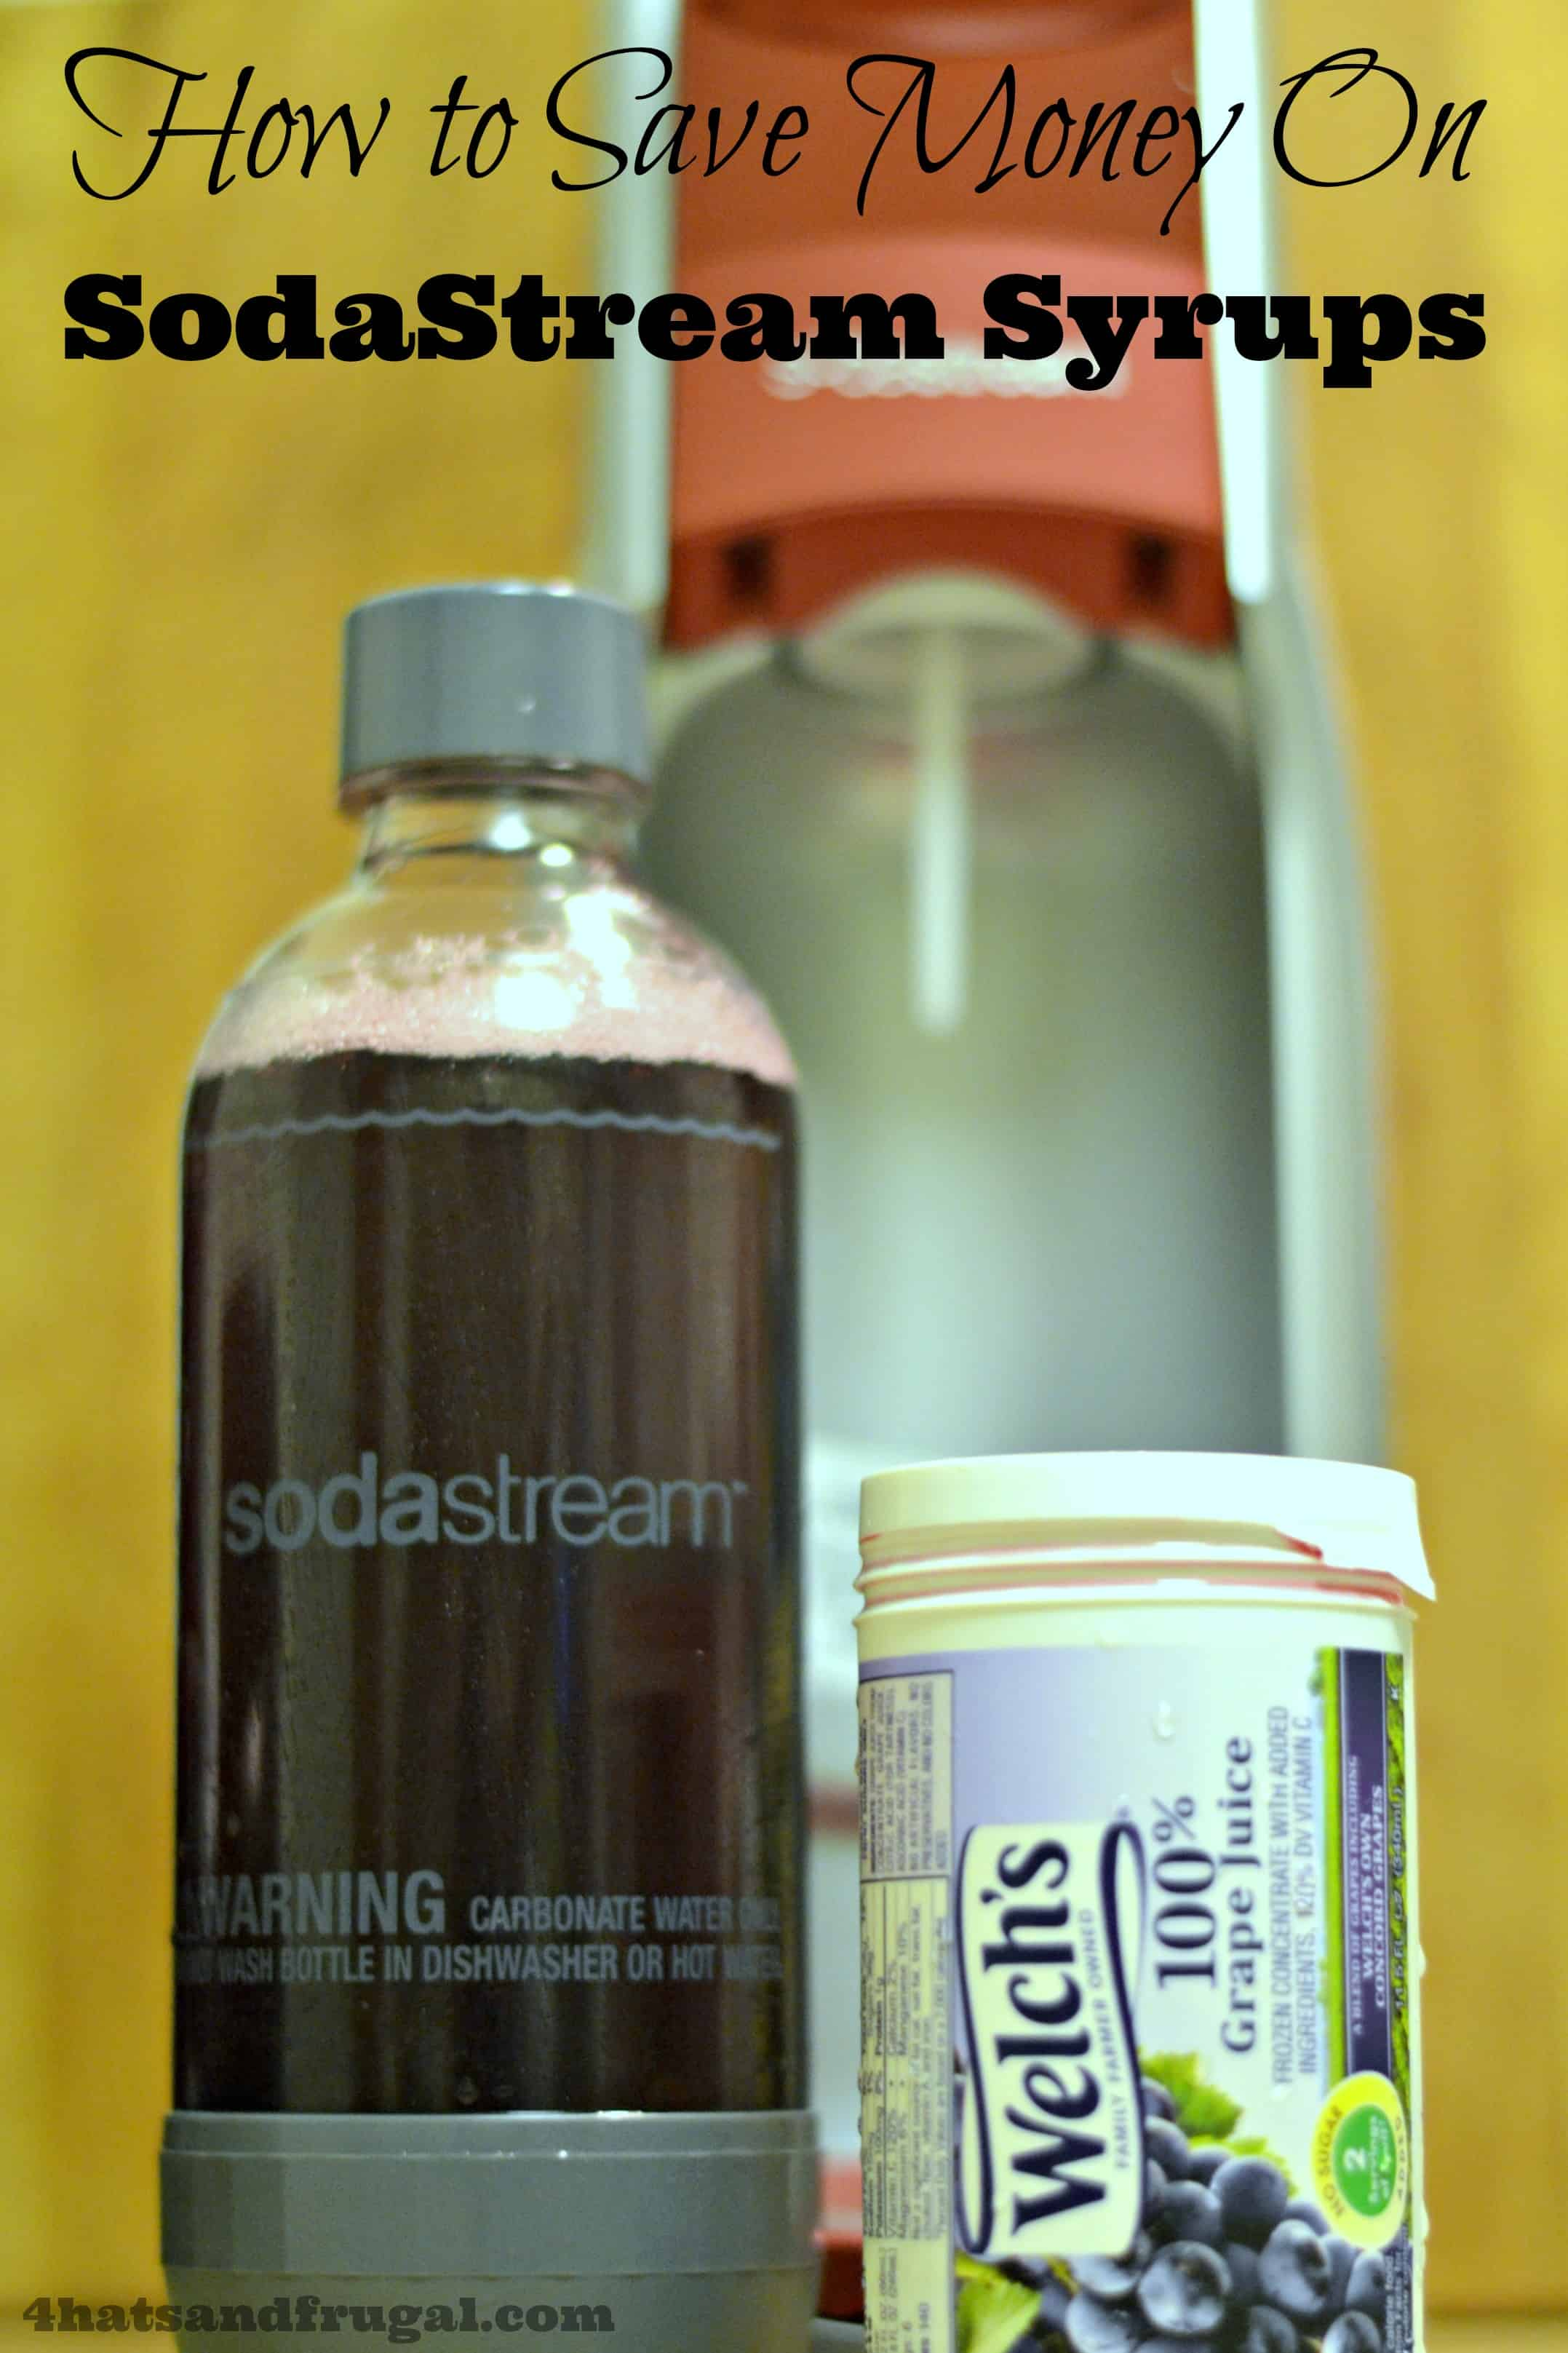 How to Save Money on SodaStream Syrups